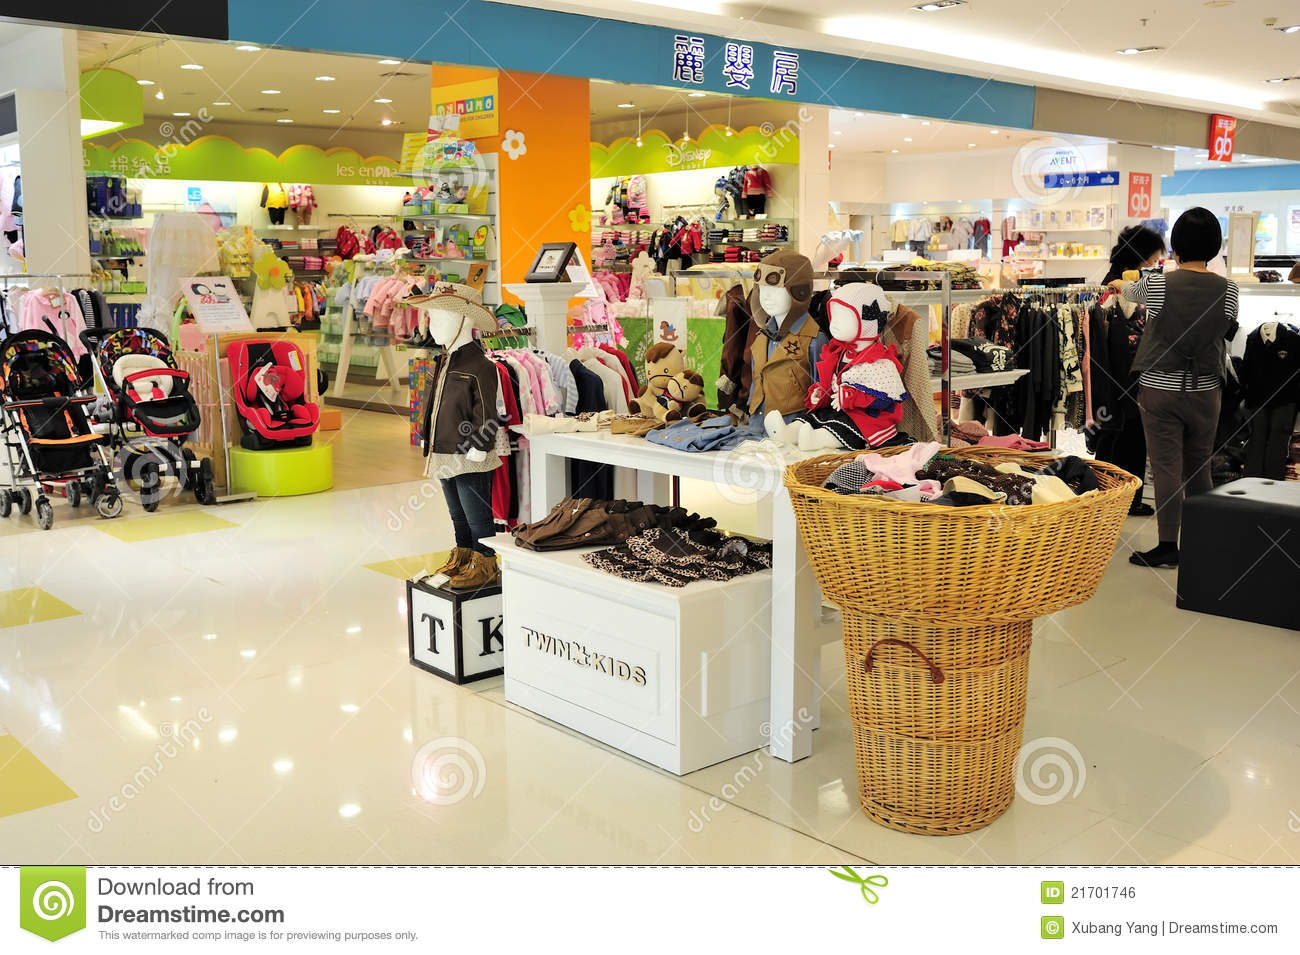 Stores for kids clothes. Cheap clothing stores